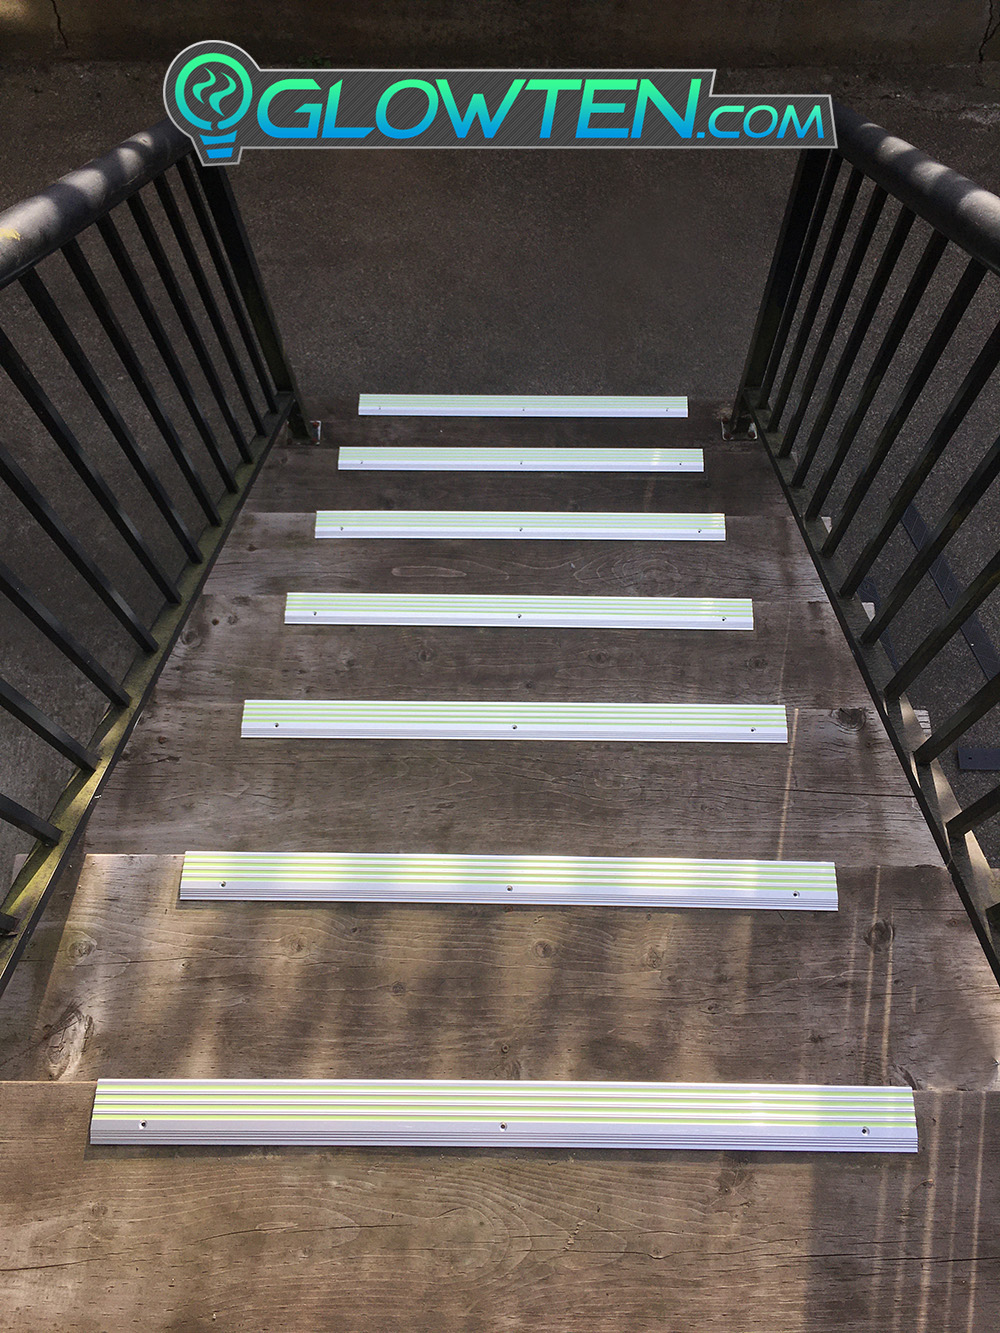 GLOWTEN.com - ANTI-SLIP STAIRS Traction TREAD 4-BANDS FOURBANDS GLOW IN THE DARK LUMINOUS SAFETY STRIP Out Door All Weather NON-SKID SEE BETTER AT NIGHT PREVENT FALLING FOR MINIMUM 31.5